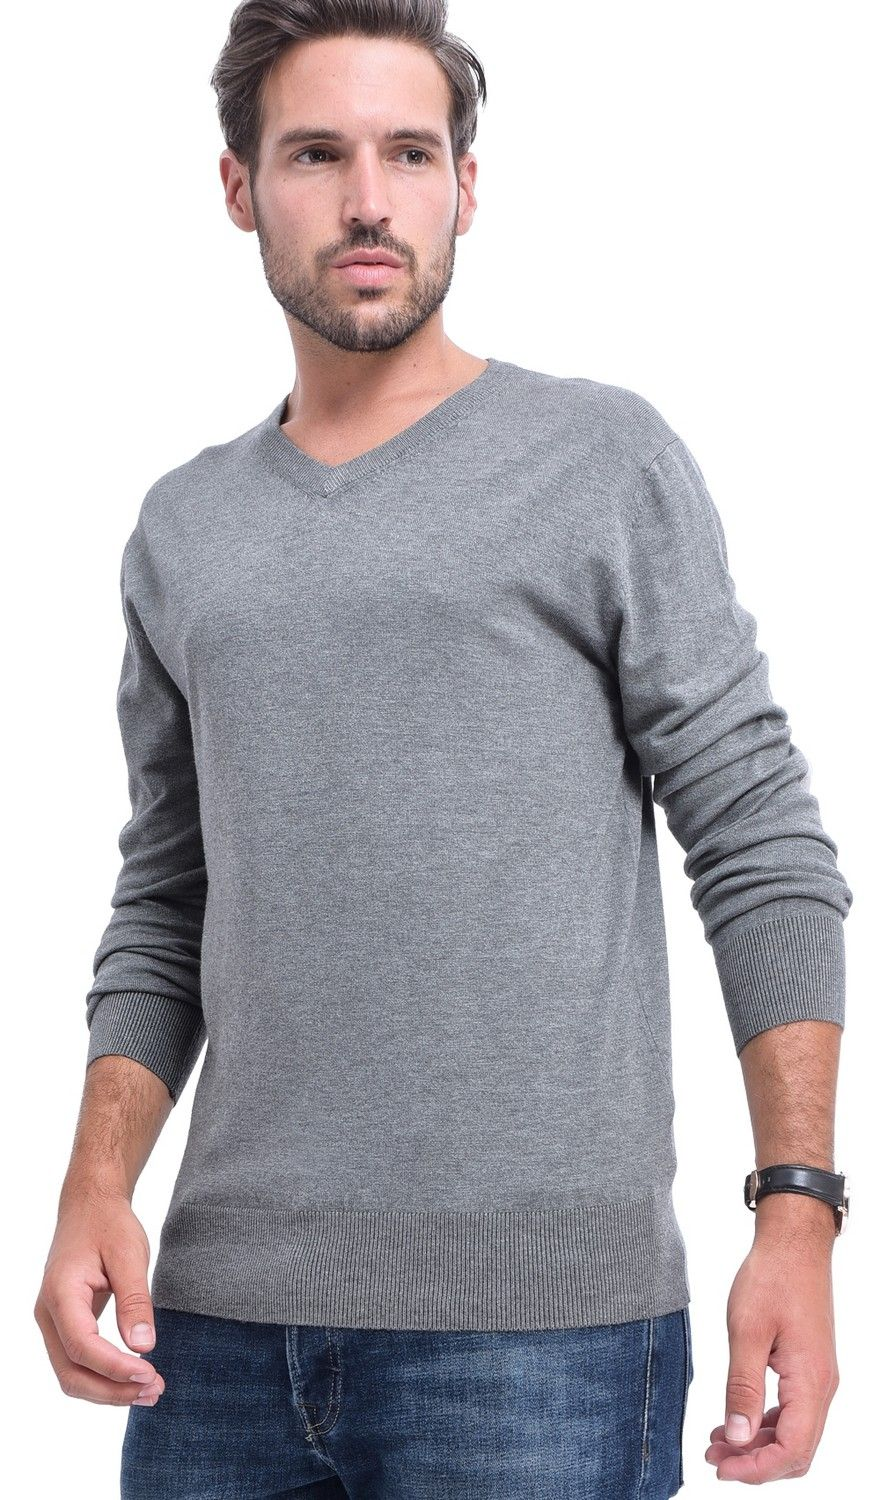 C&JO V-neck Elbow Patch Sweater in Grey